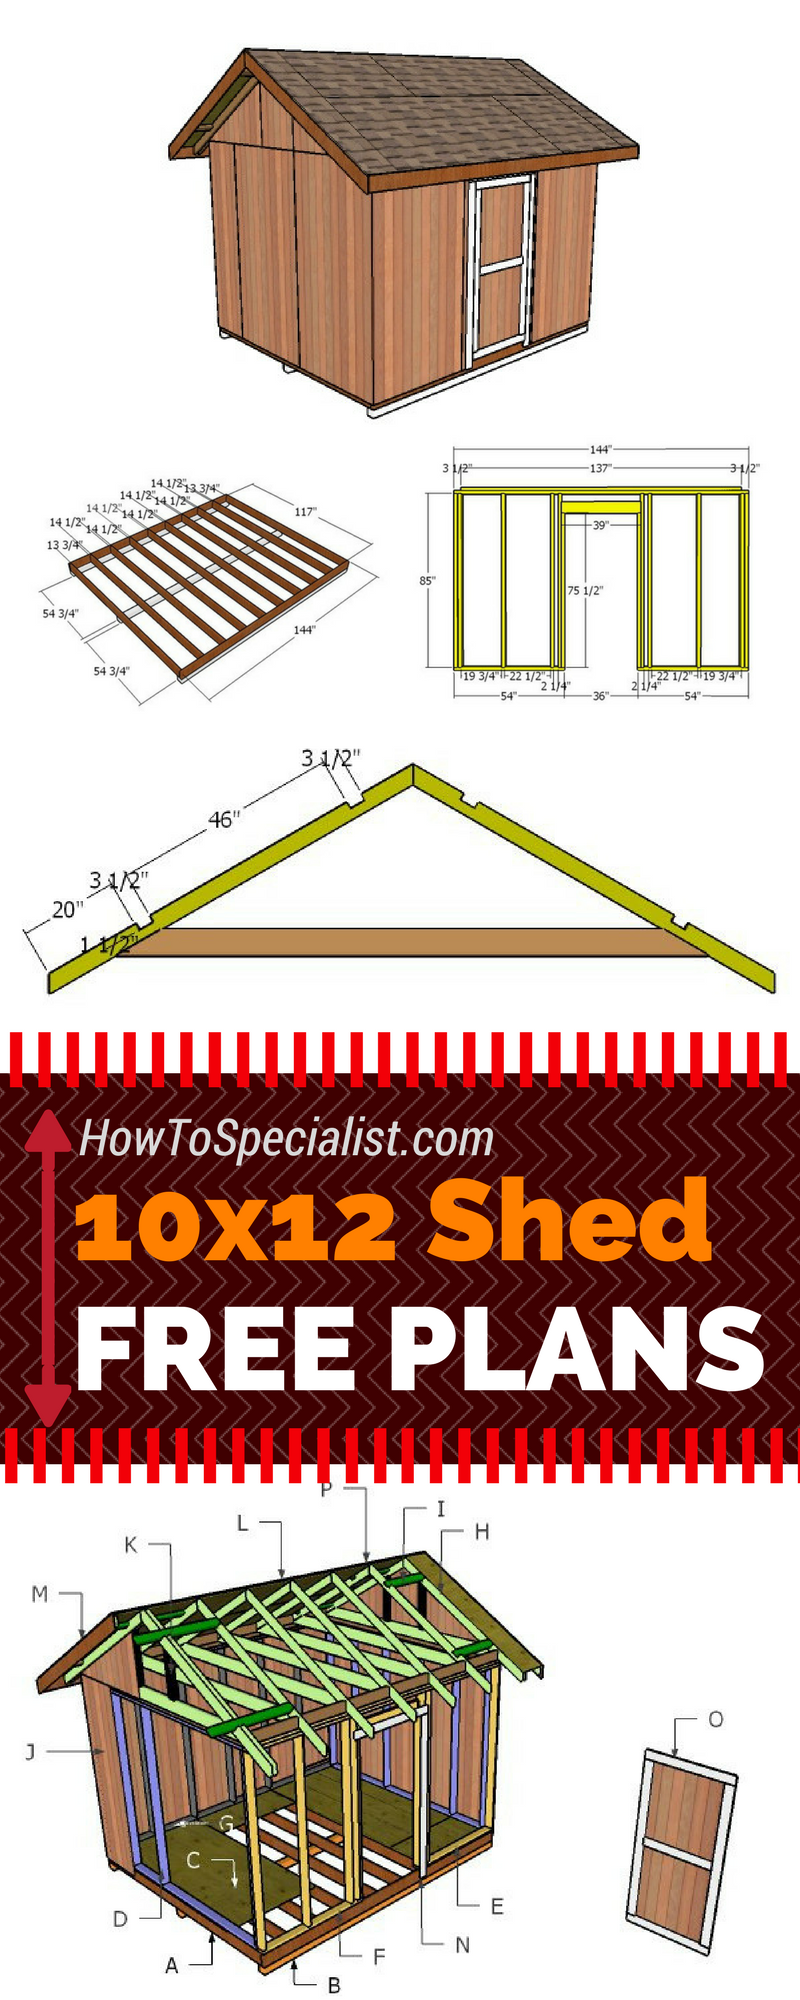 Learn How To Build A 10x12 Shed With My Free And Step By Step Plans! Just  Follow The Free 10x12 Shed Plans If You Want To Build A Garden Storage Shed  With ...